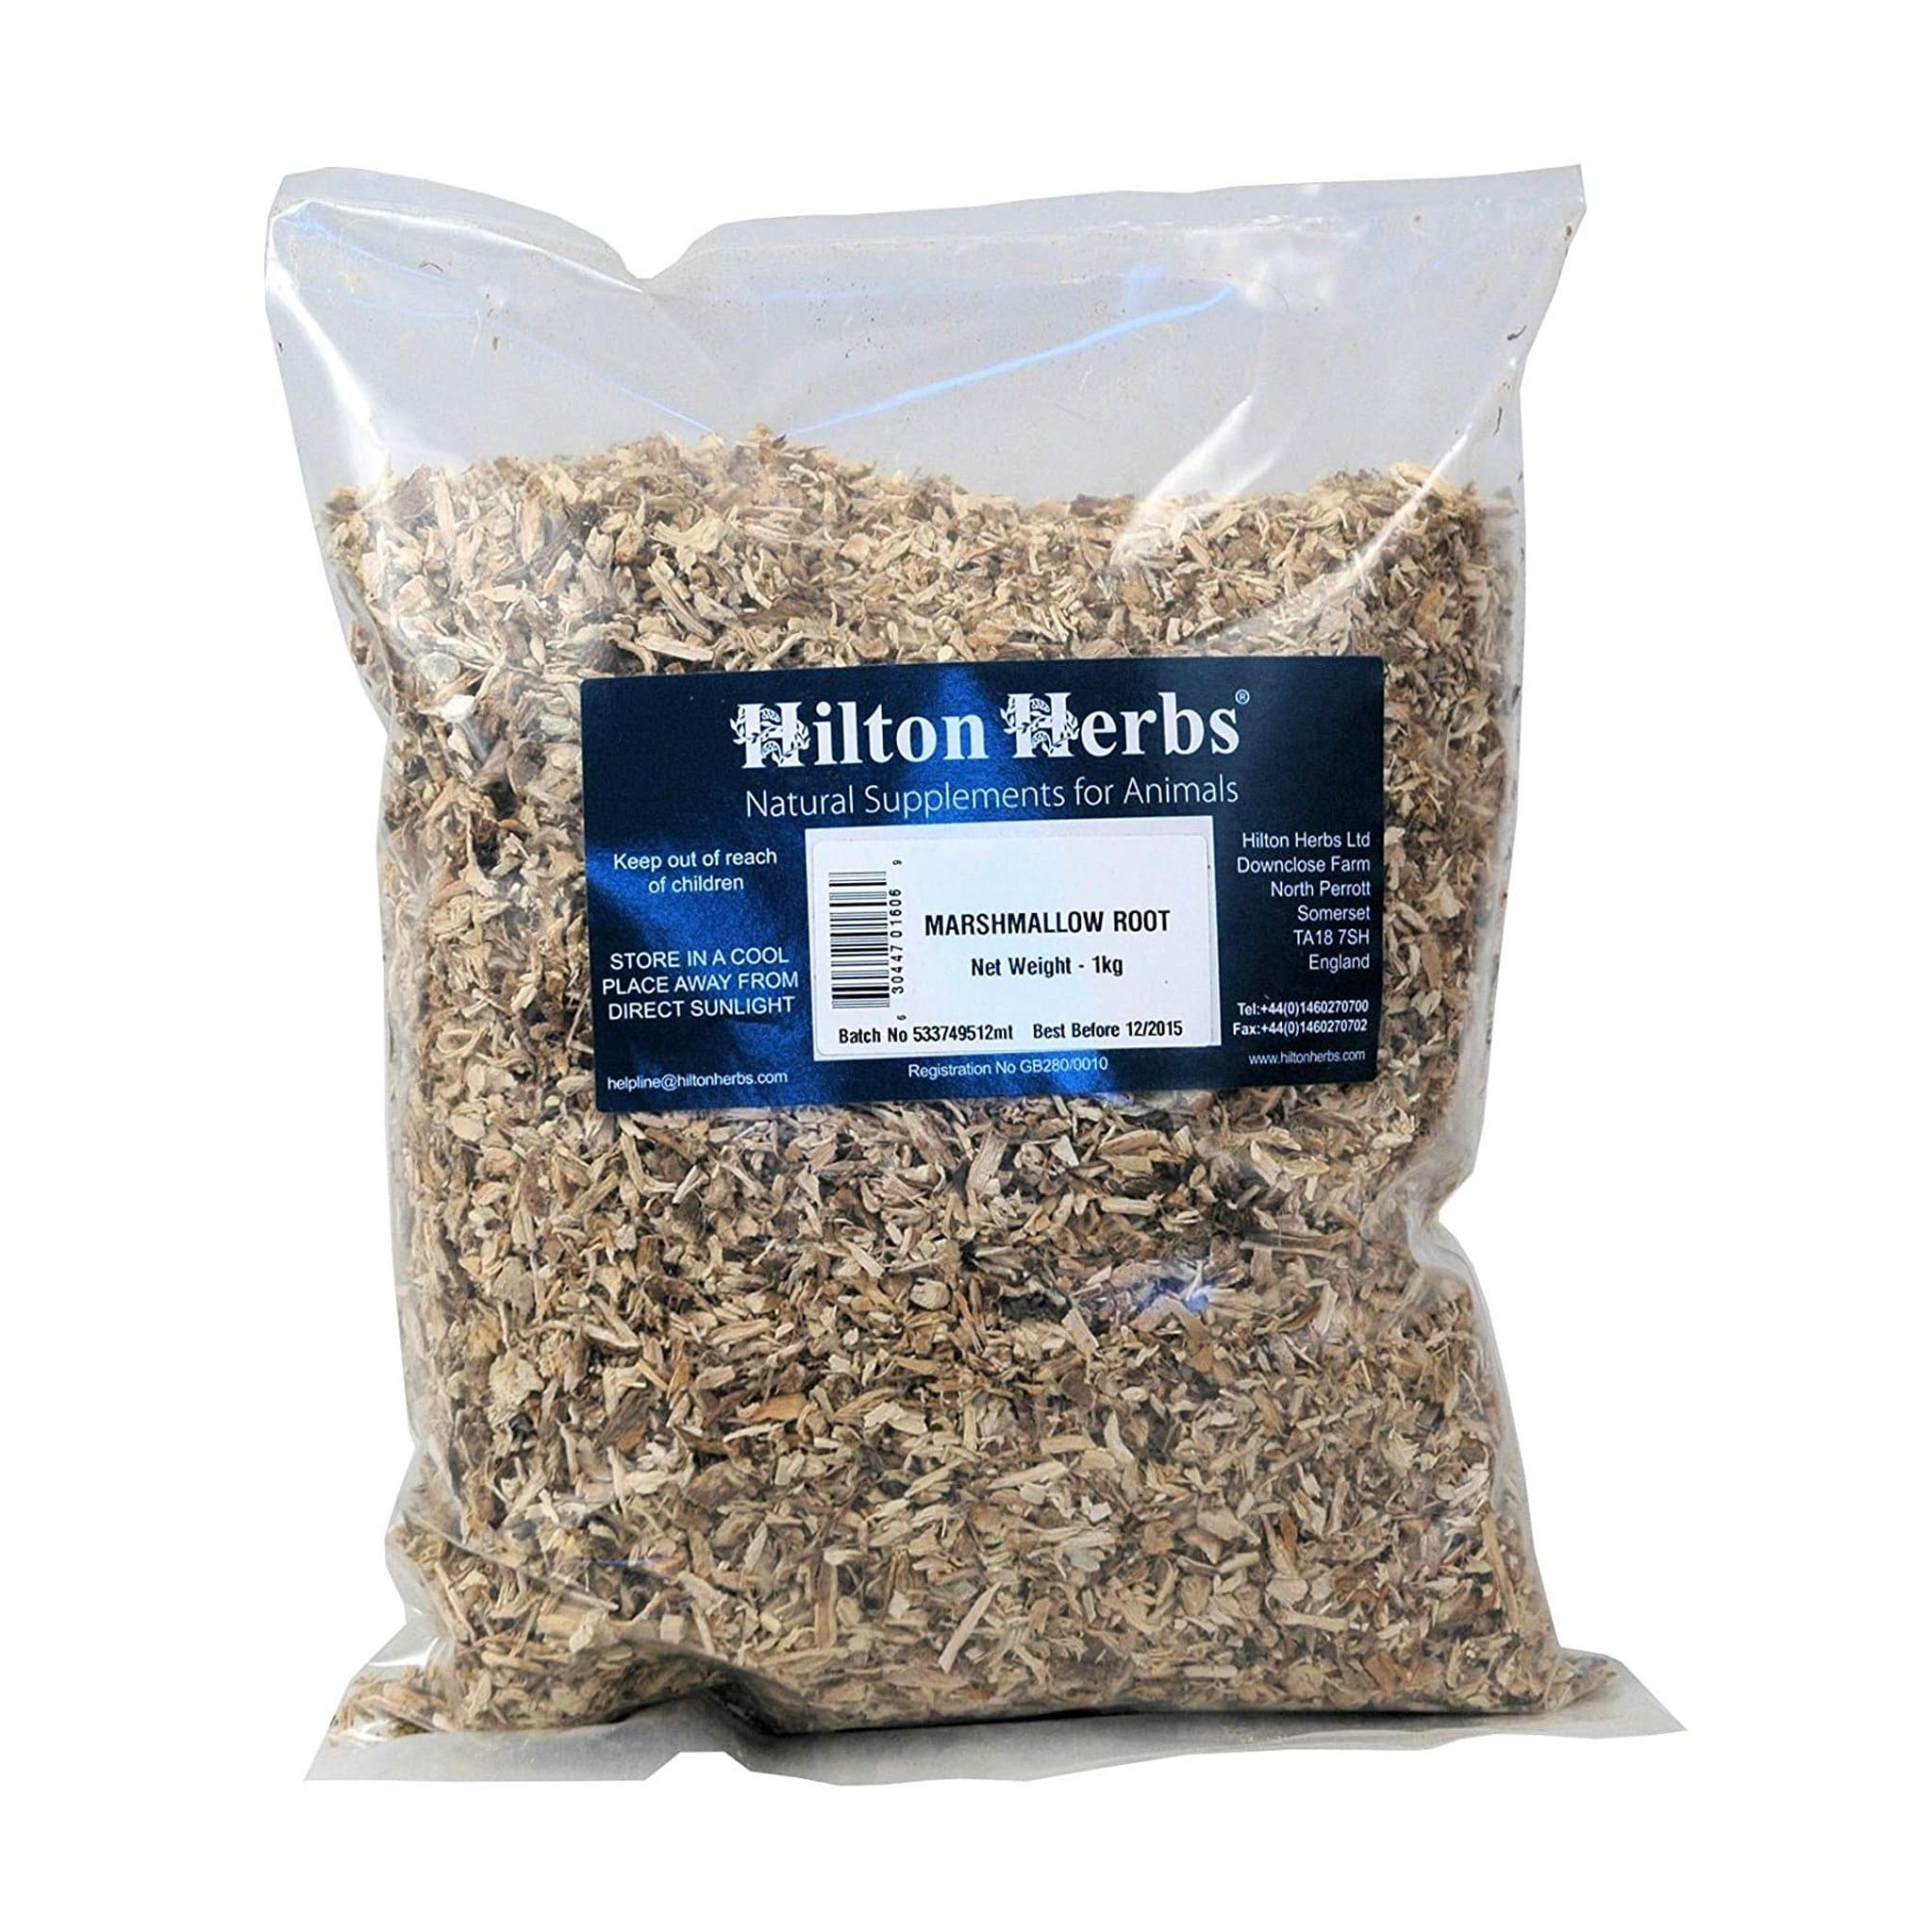 HHS1160 Hilton Herbs Marshmallow Root Supplement